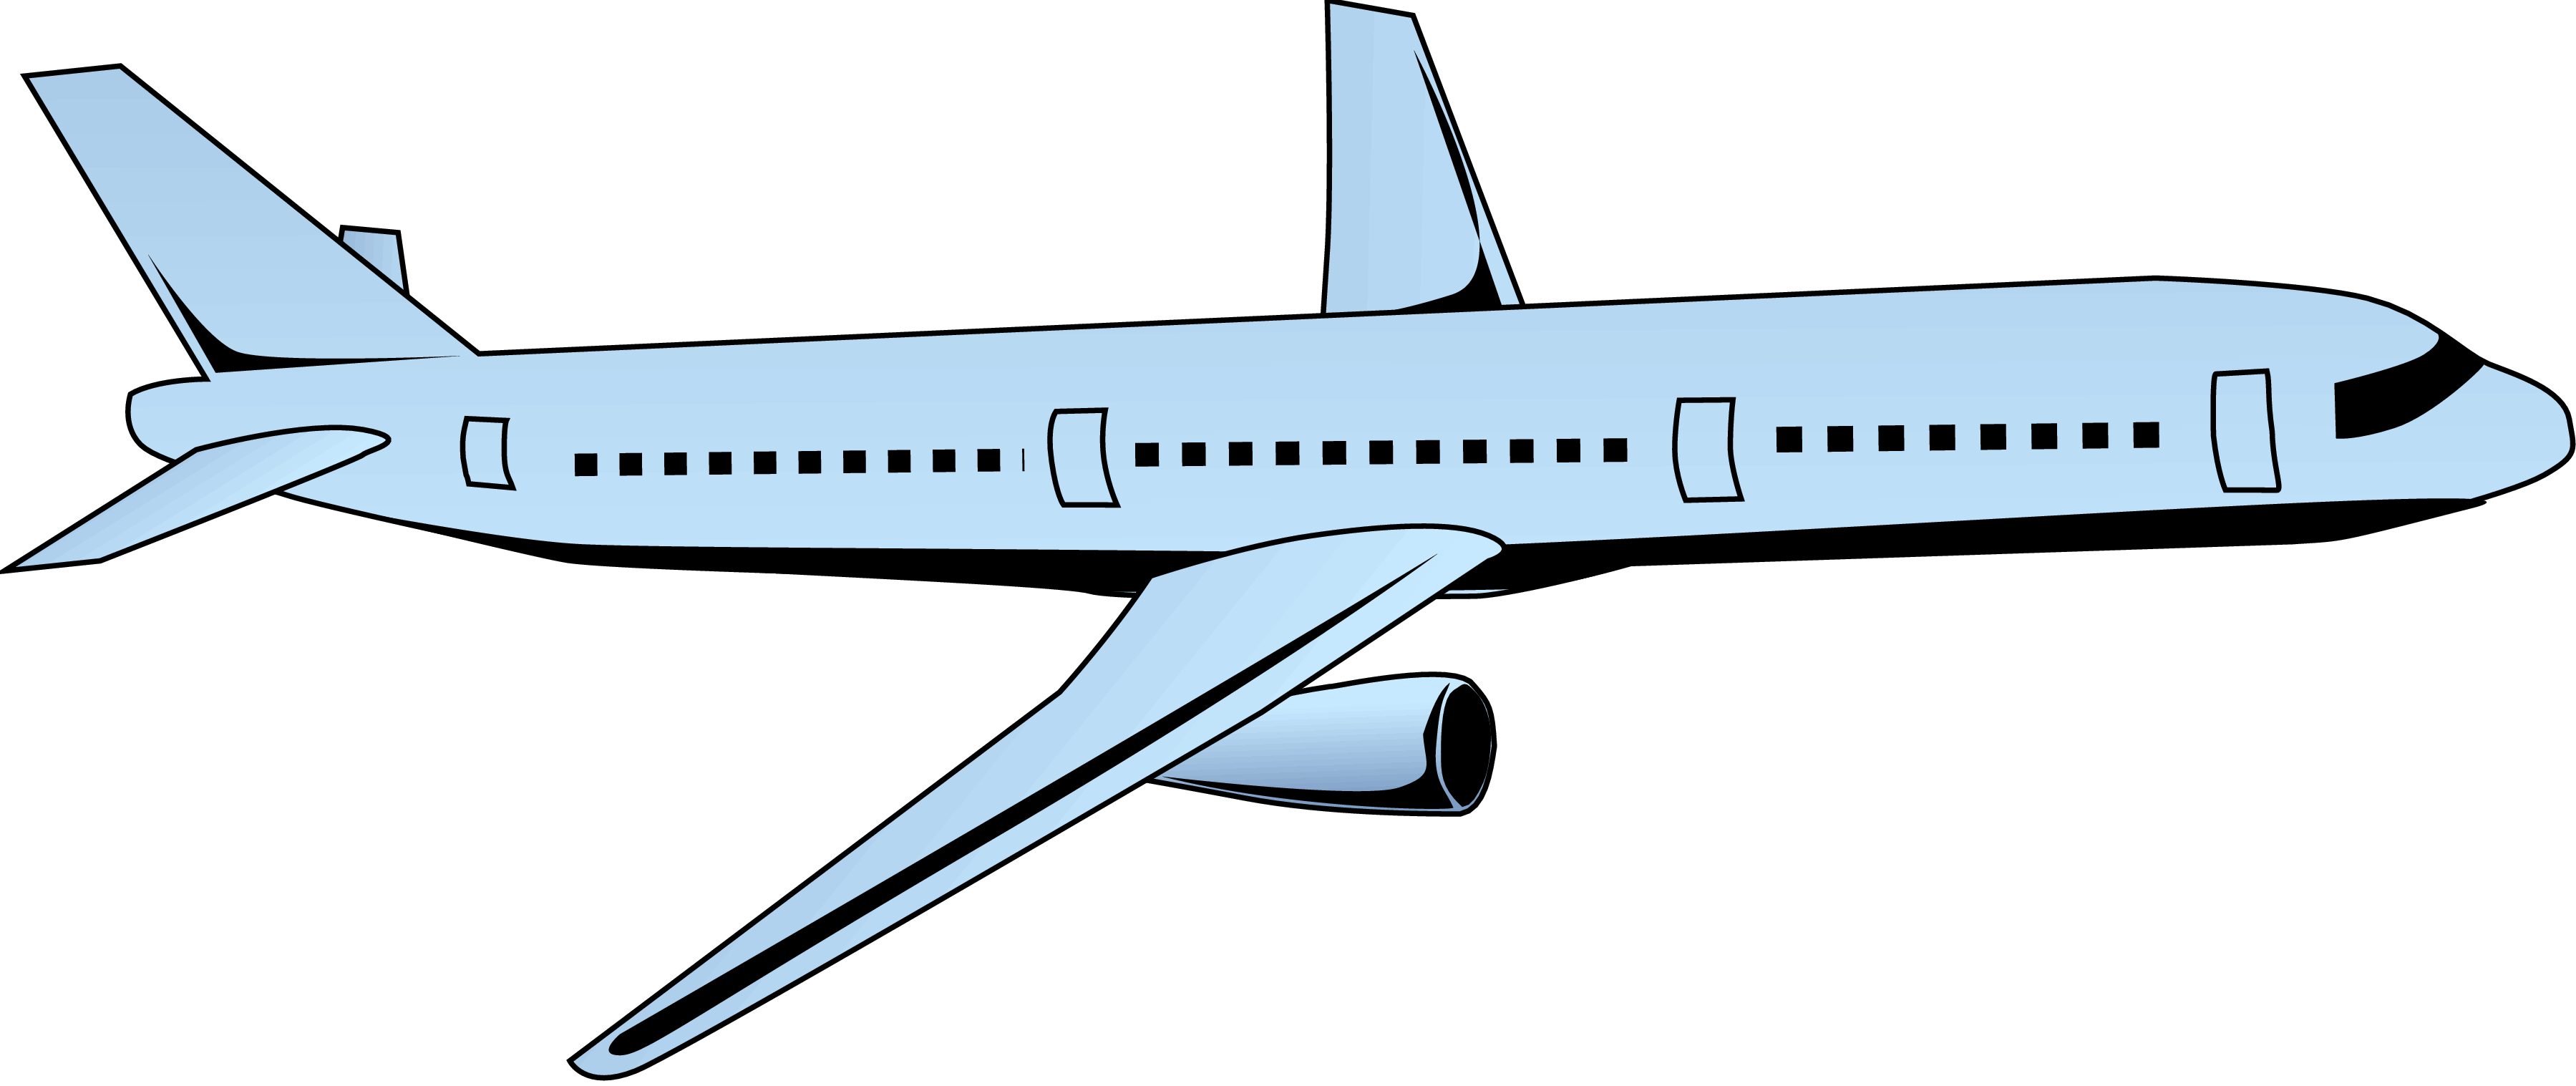 Clipart door airplane. Plane png transparent images